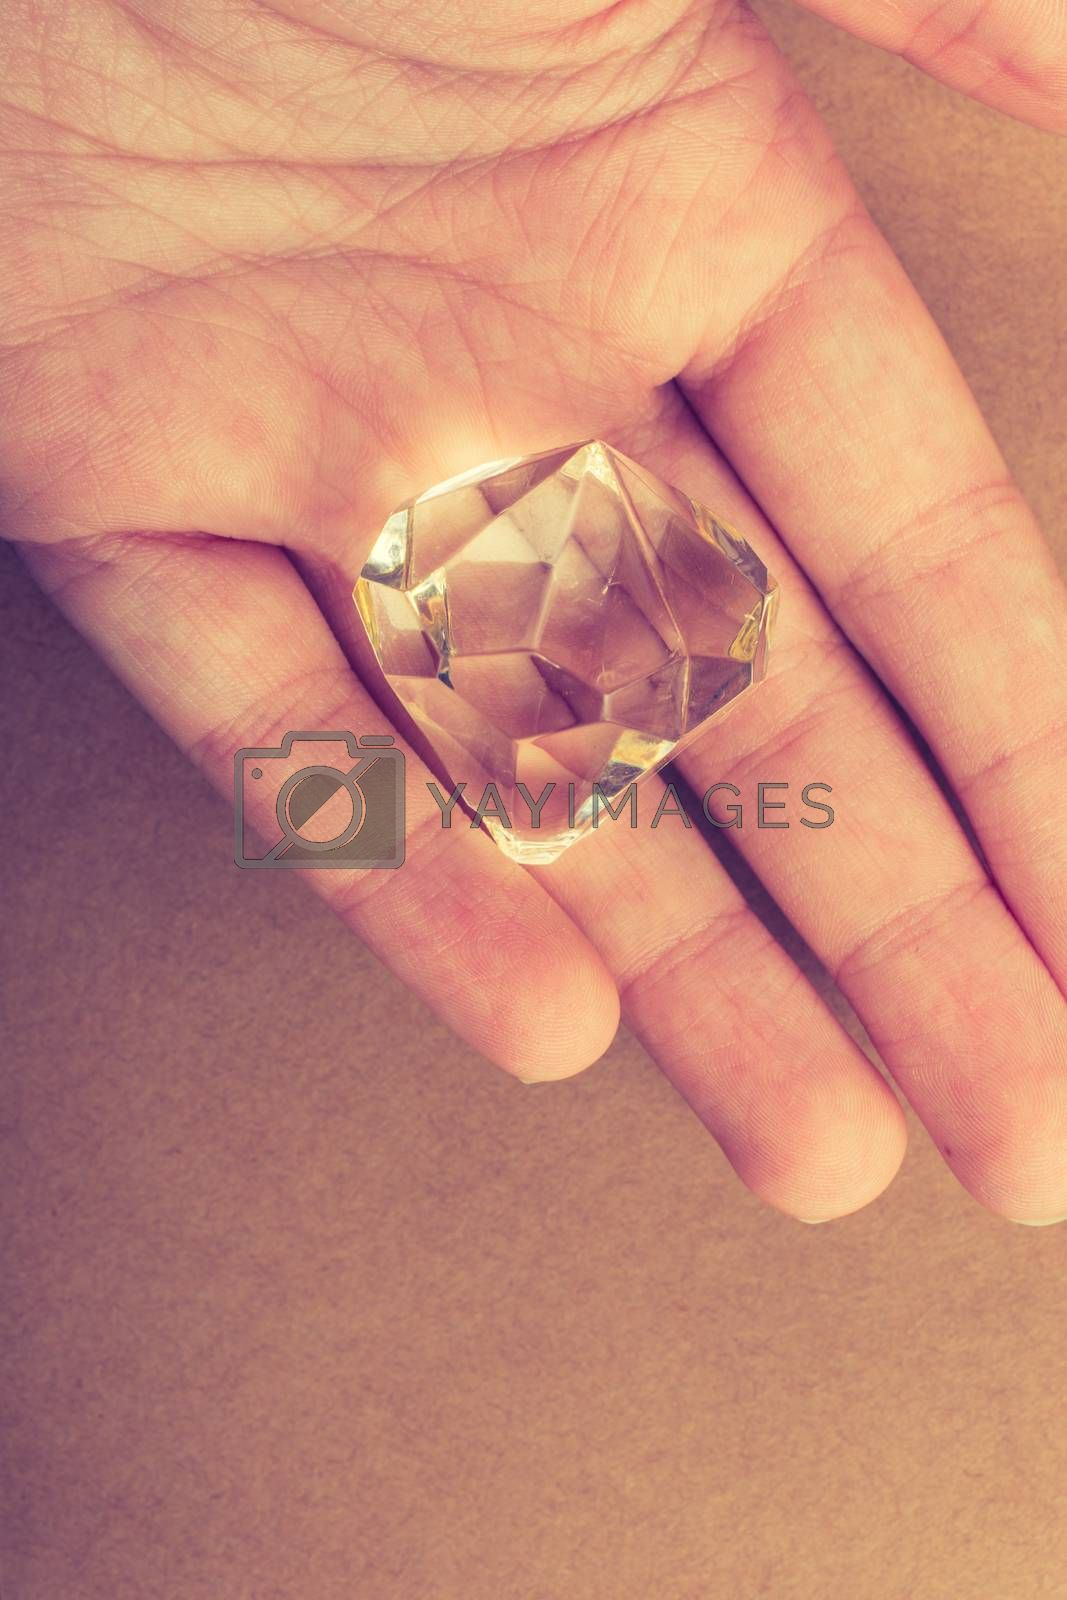 Fake diamond stone in hand in view